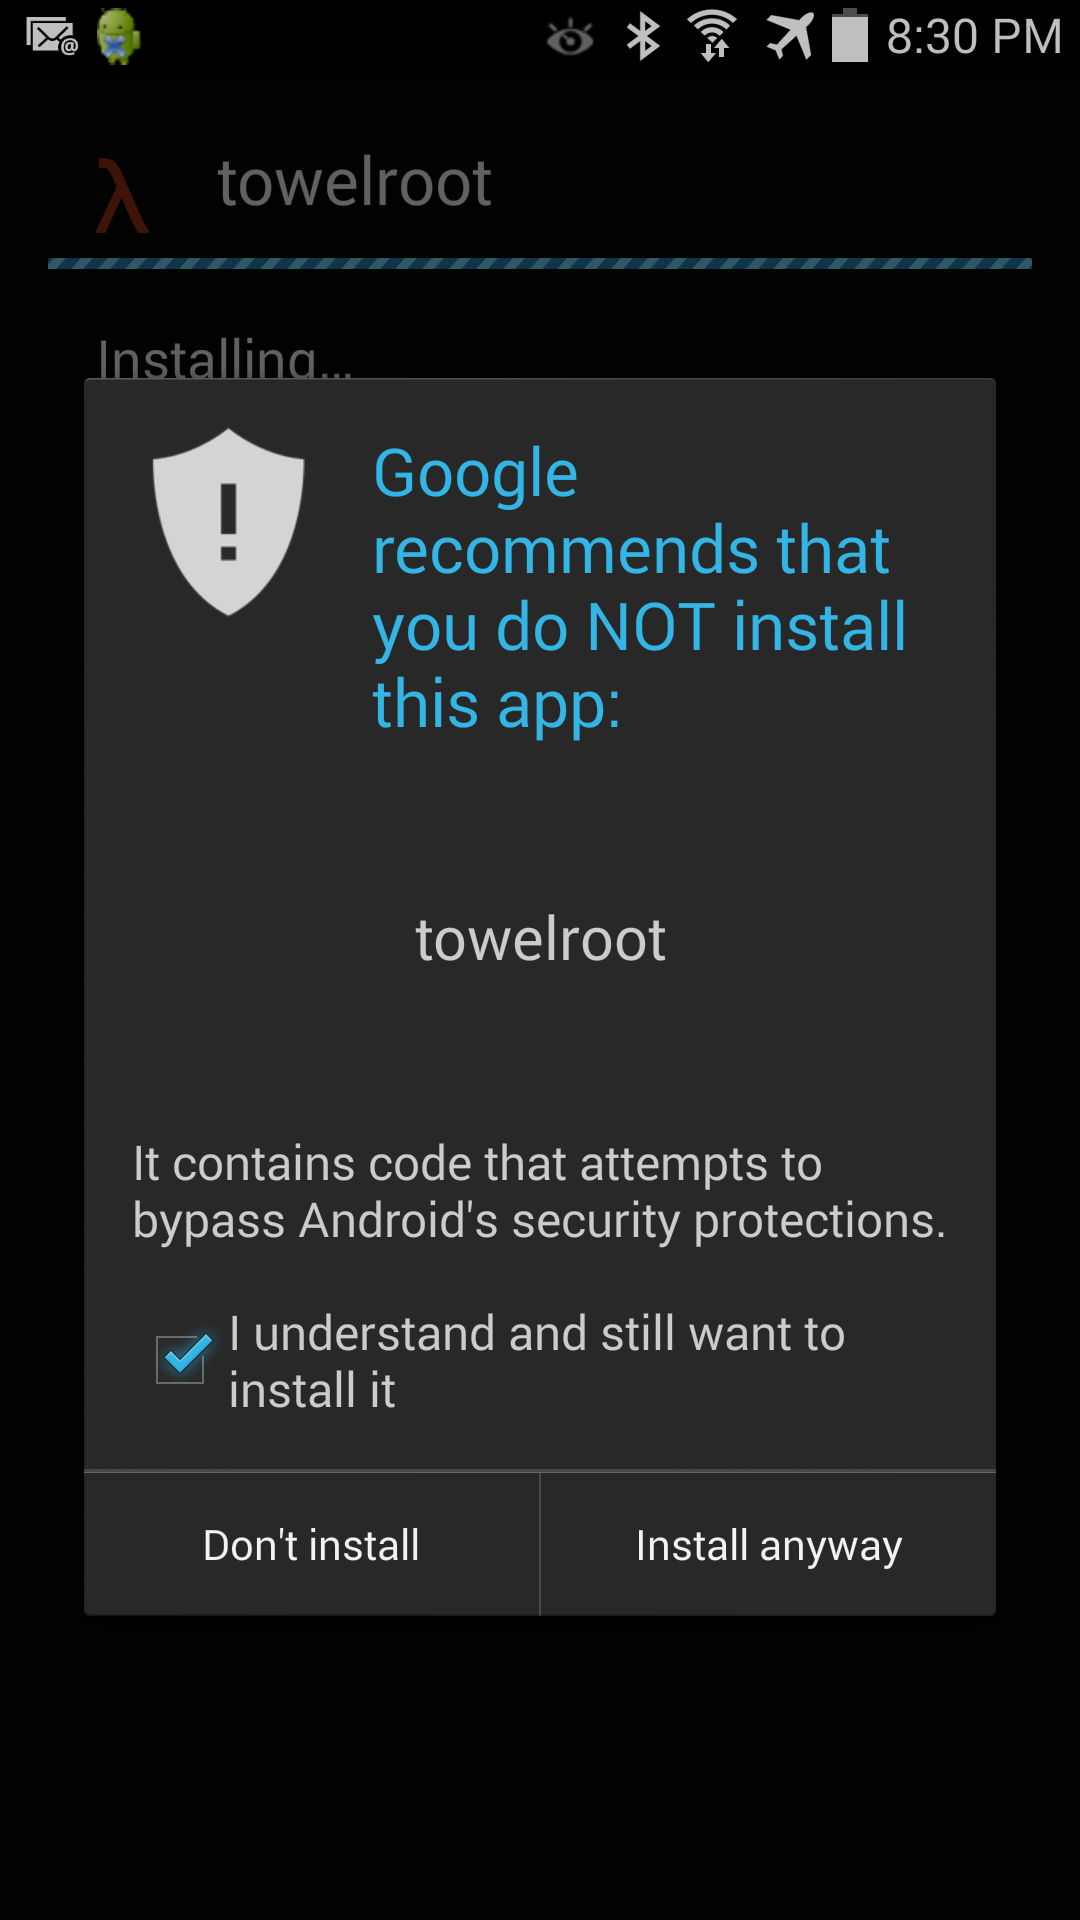 Android Warning you would never see on iOS